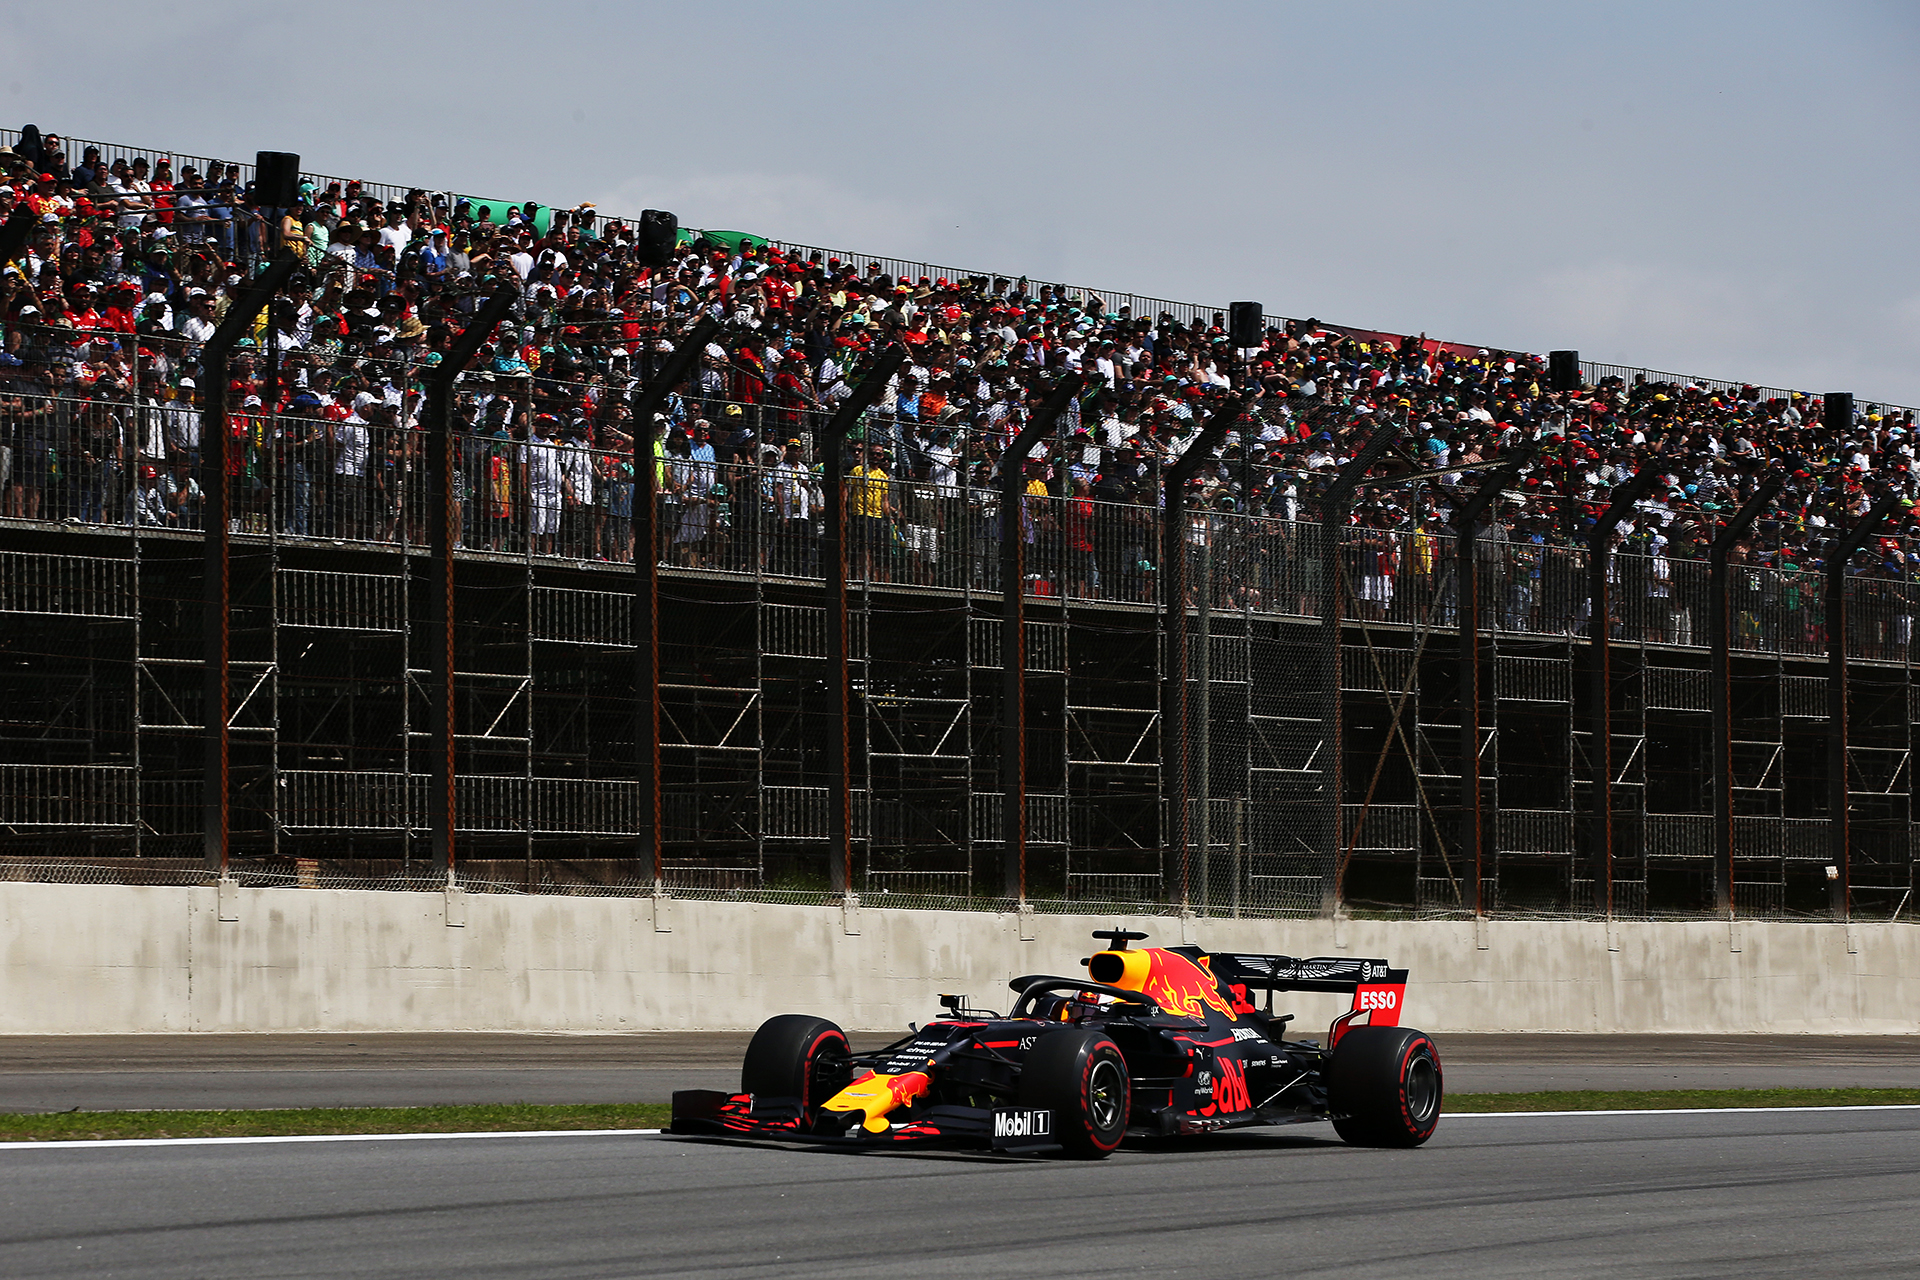 SAO PAULO, BRAZIL - NOVEMBER 17: Max Verstappen of the Netherlands driving the (33) Aston Martin Red Bull Racing RB15 on track during the F1 Grand Prix of Brazil at Autodromo Jose Carlos Pace on November 17, 2019 in Sao Paulo, Brazil. (Photo by Charles Coates/Getty Images) // Getty Images / Red Bull Content Pool // AP-227CXPTBH2111 // Usage for editorial use only //